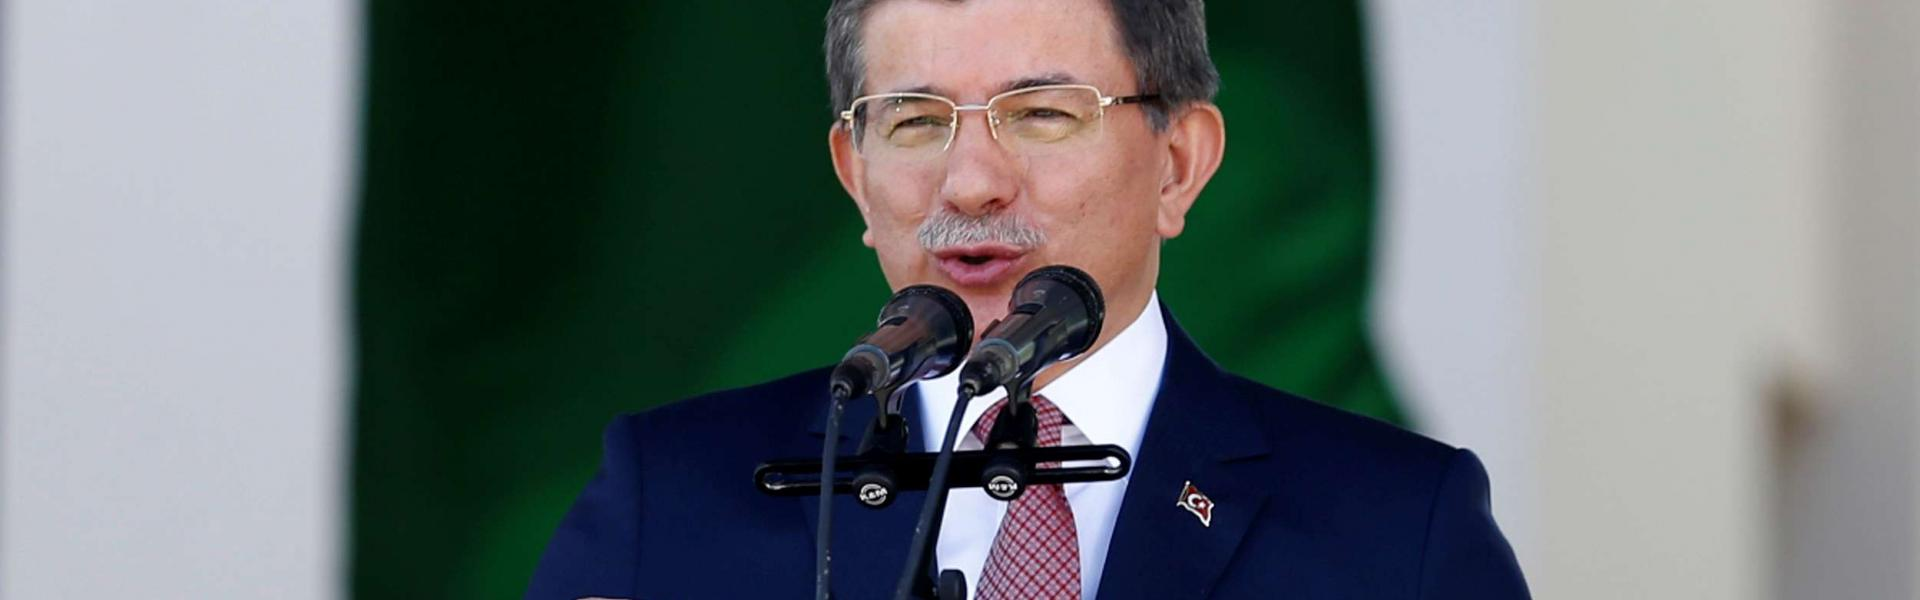 Former PM Davutoğlu hits back at pro-AKP media